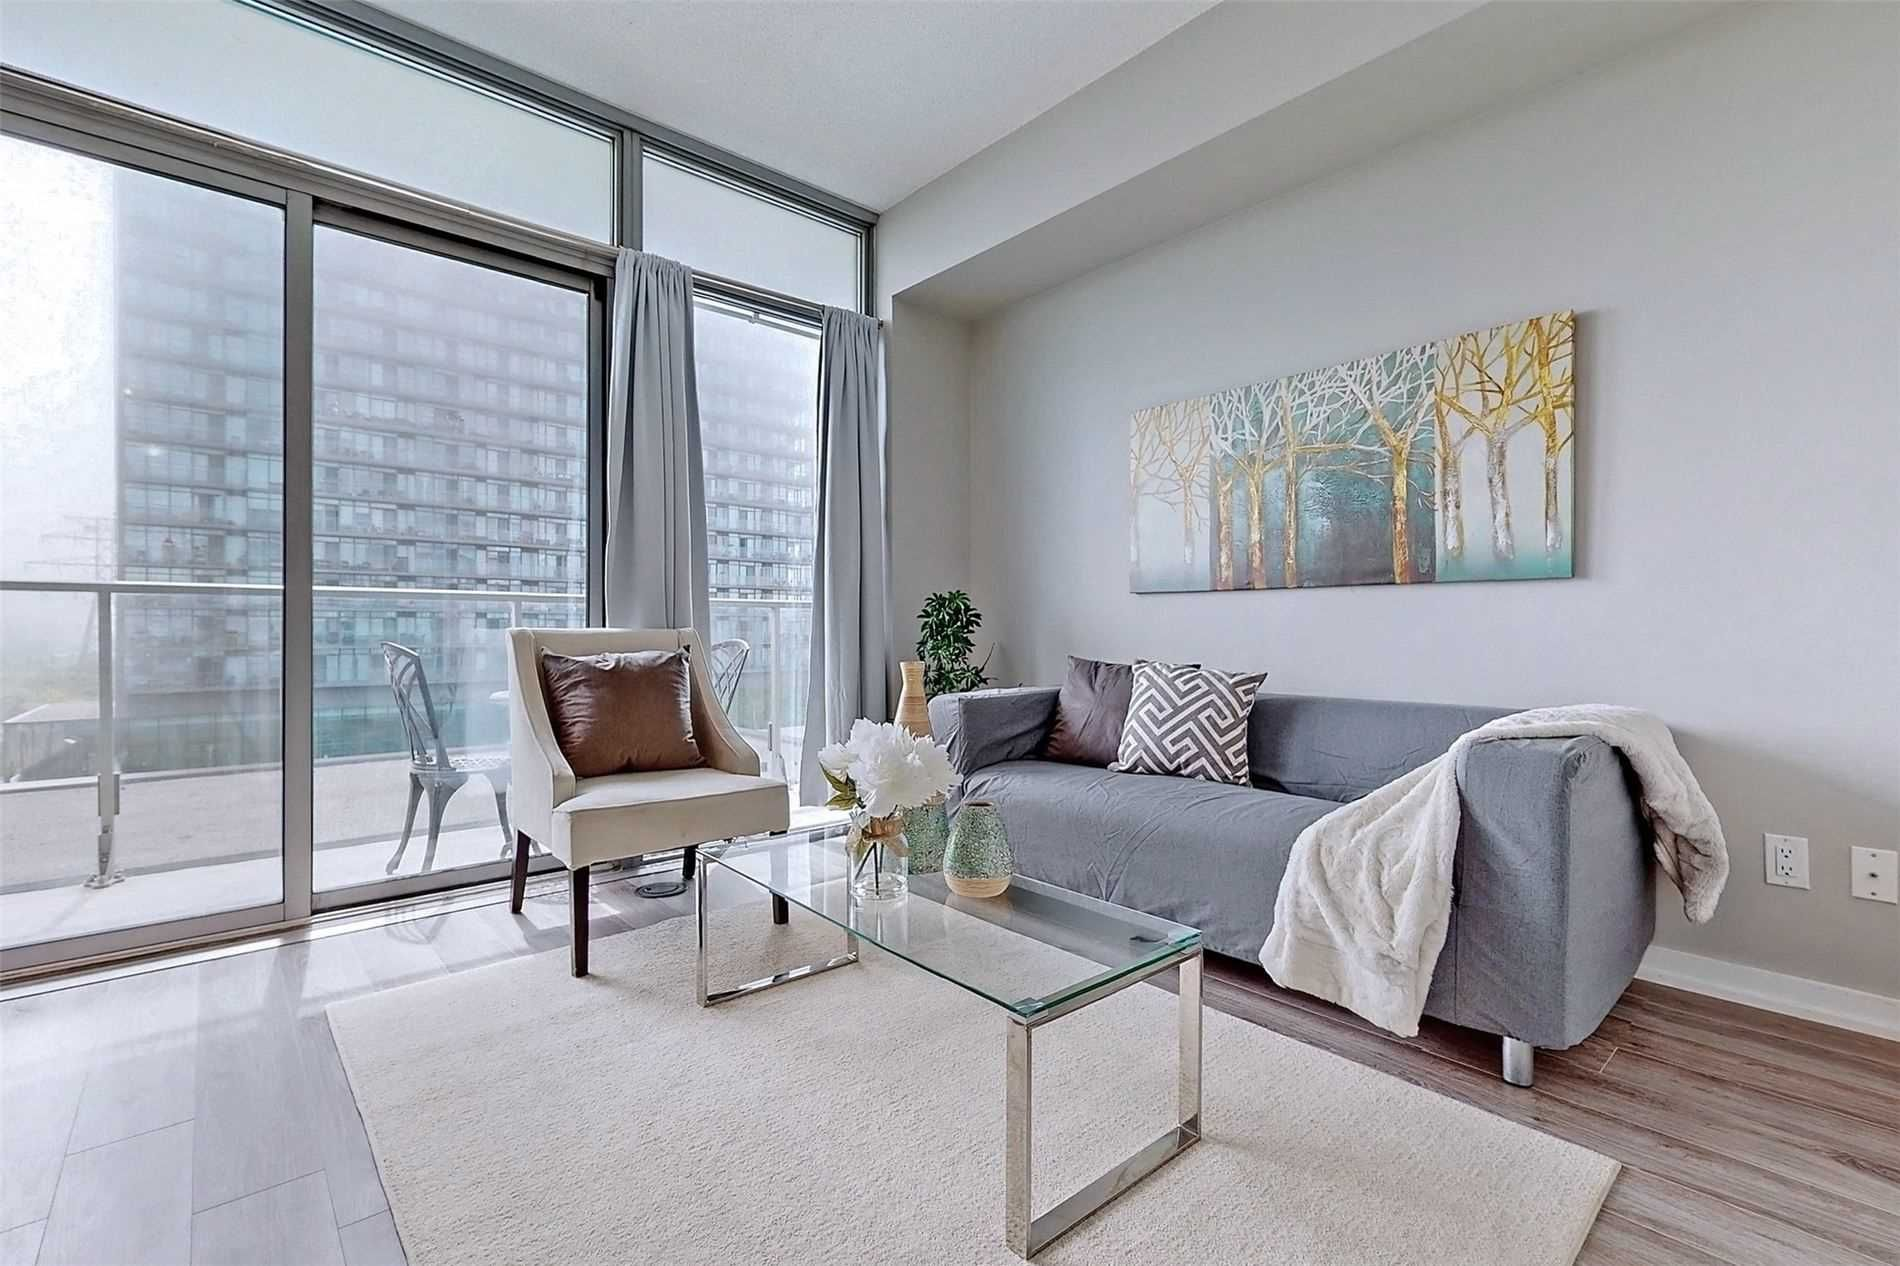 103 The Queensway Ave, unit 406 for sale in Toronto - image #1